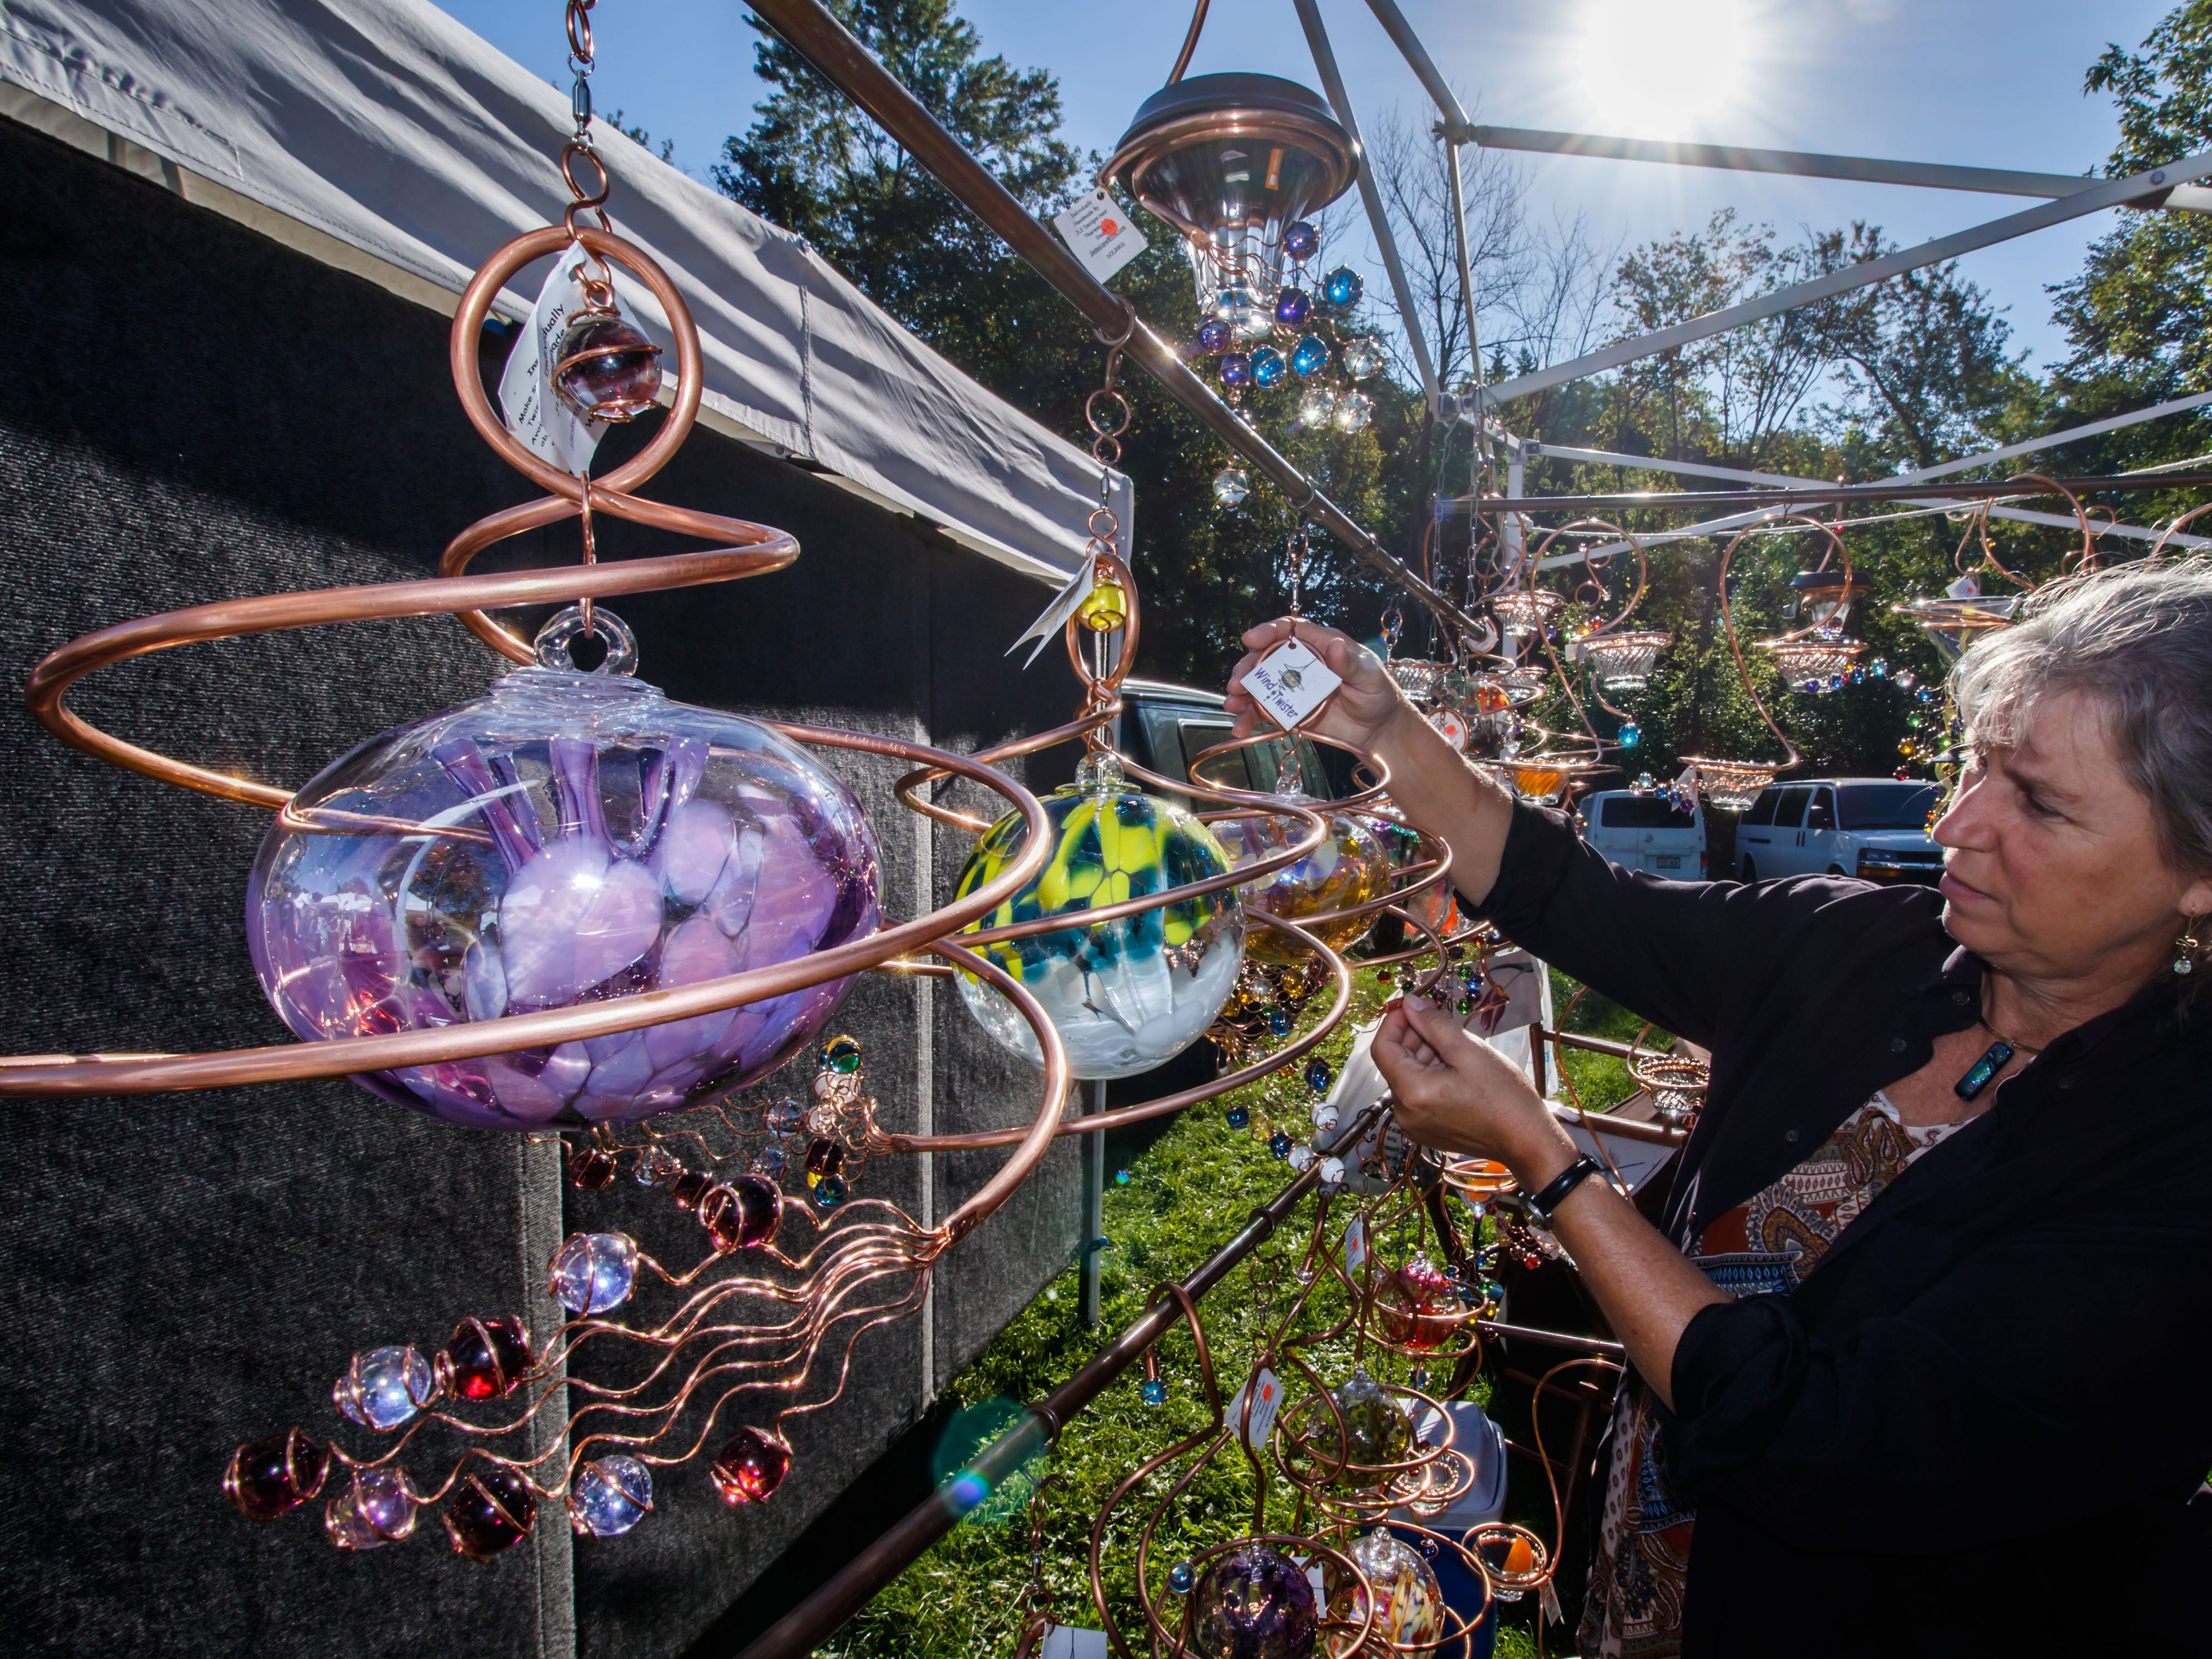 Janet Erickson of JLE Designs in Theresa adjusts one of her handcrafted artworks during the 50th annual Cheery Cherry Fall Fair in Menomonee Falls on Sunday, Sept. 23, 2018. The event features arts and crafts vendors, raffles, wine tasting, a beer garden, live music and more.